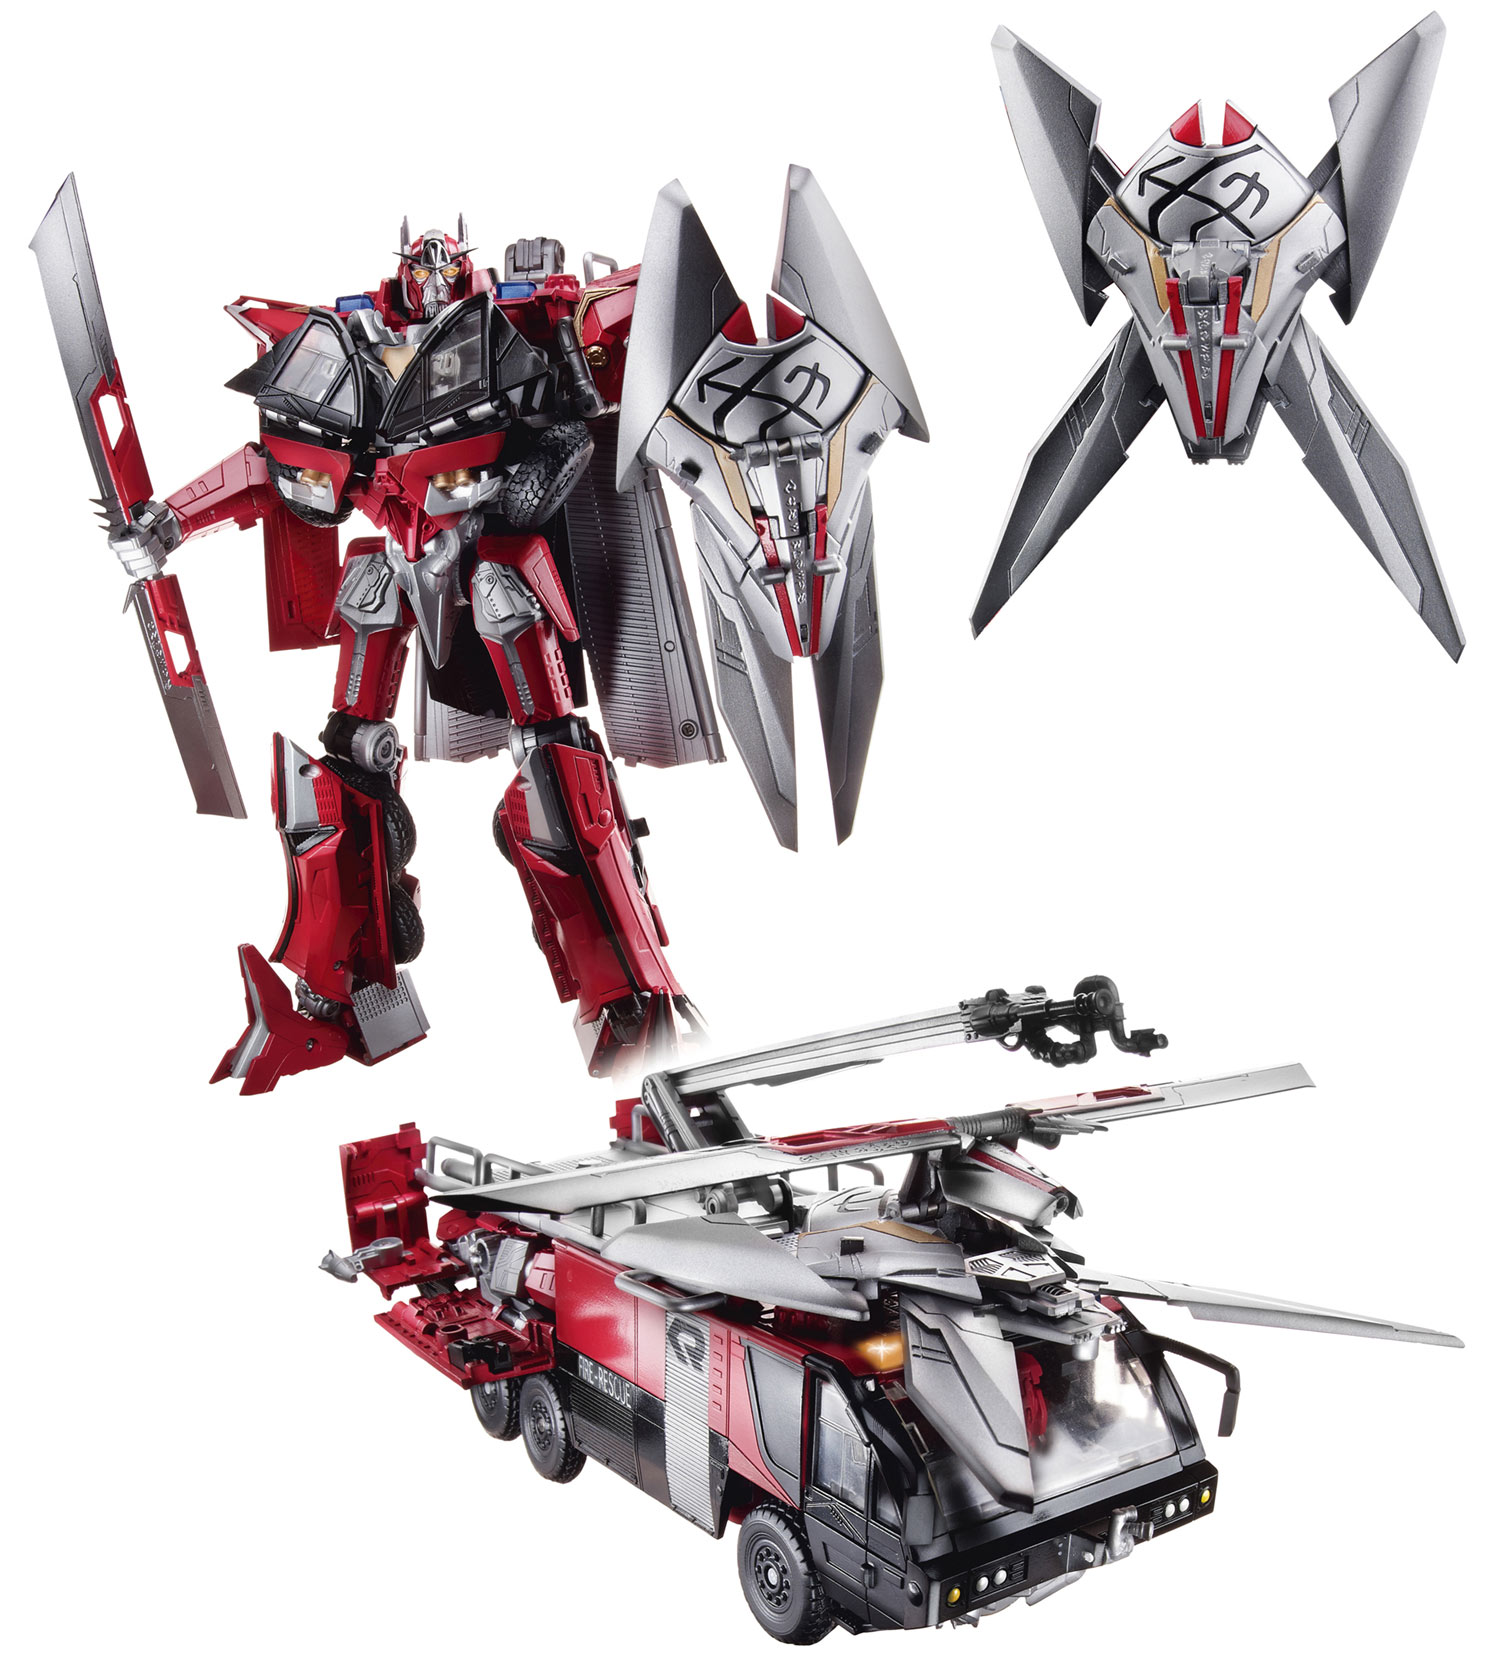 transformers: dark of the moon sentinel prime toy revealed